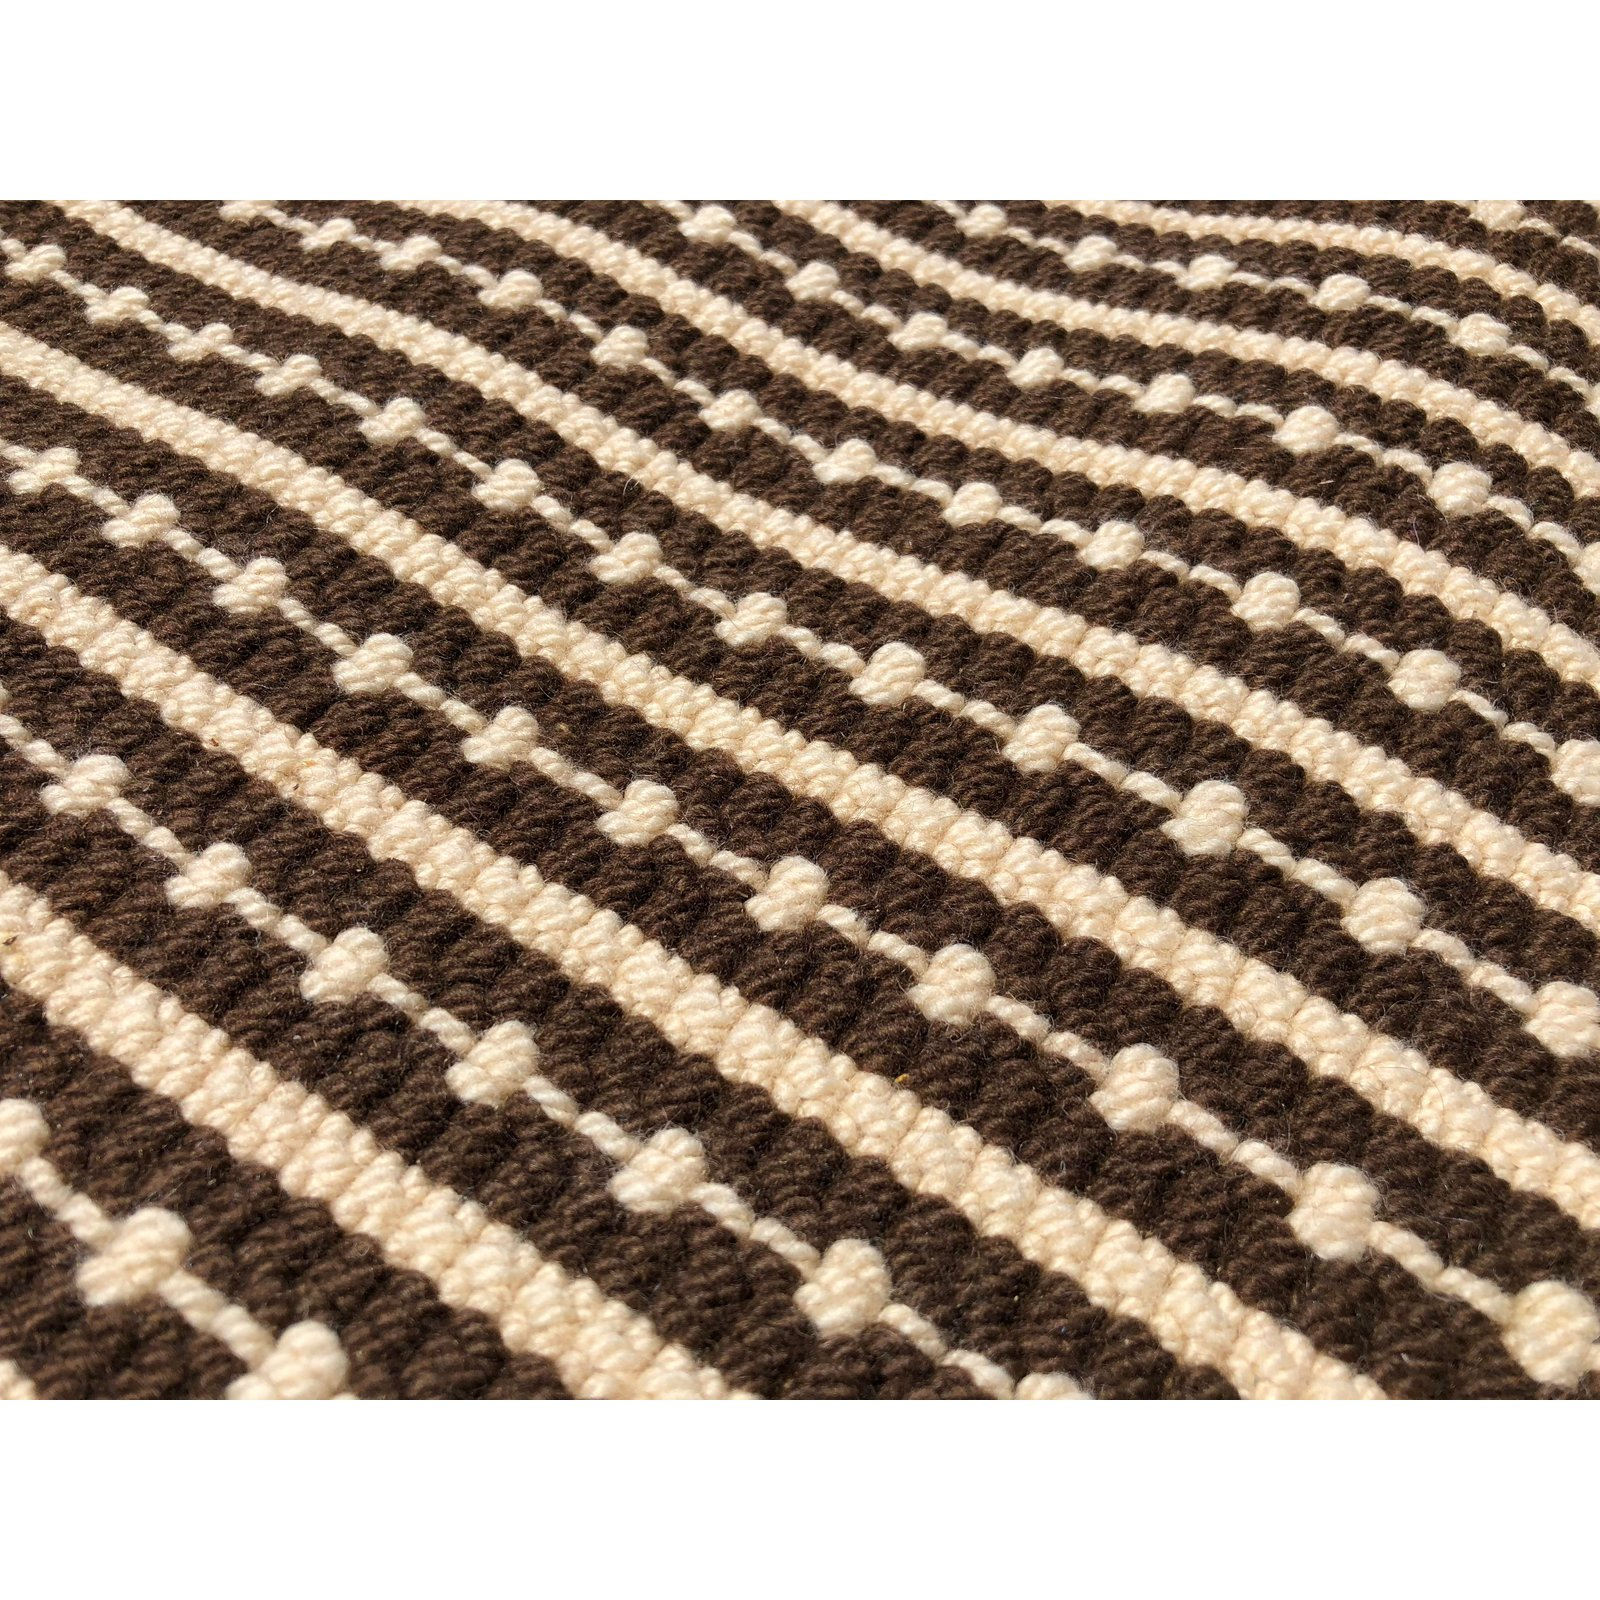 Patterned Area Rugs Awesome Design Ideas